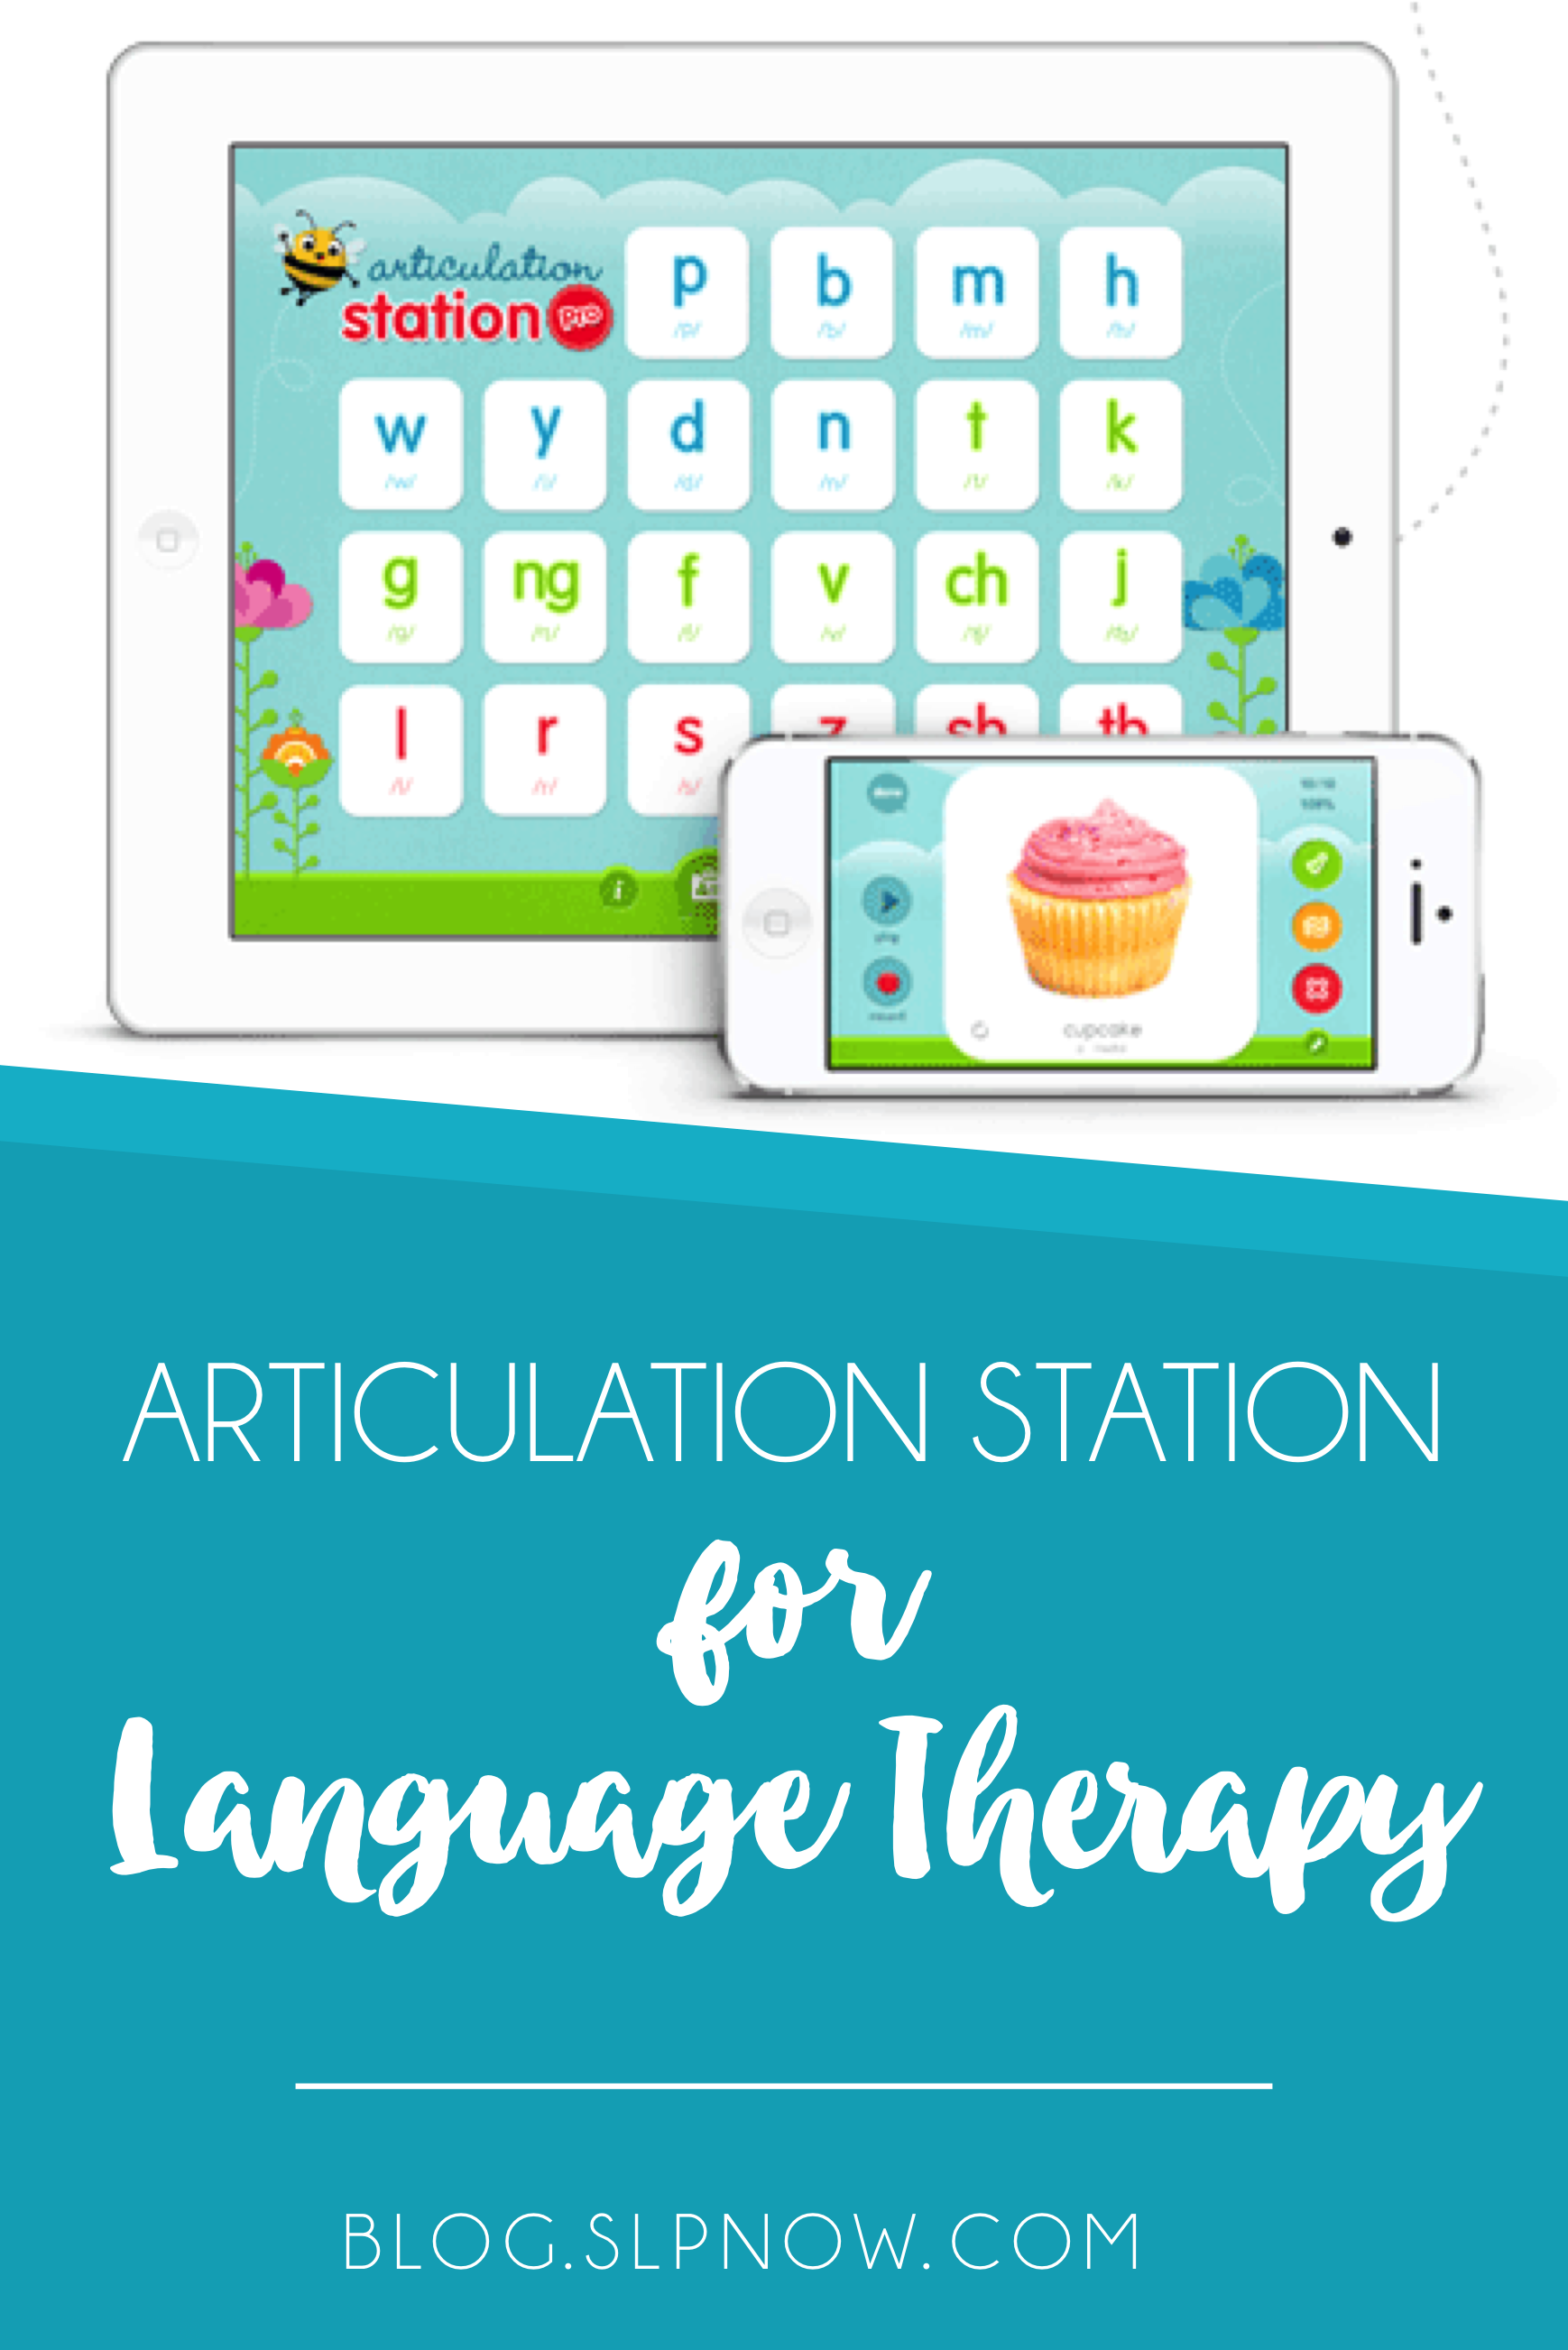 Are you looking for a way to jazz up your articulation instruction and practice? I recommend that you check out Articulation Station, an awesome app that makes articulation easy and fun. In this blog post, I'm describing what it is, how it works, and goals it helps you target. Click through to get all the details!